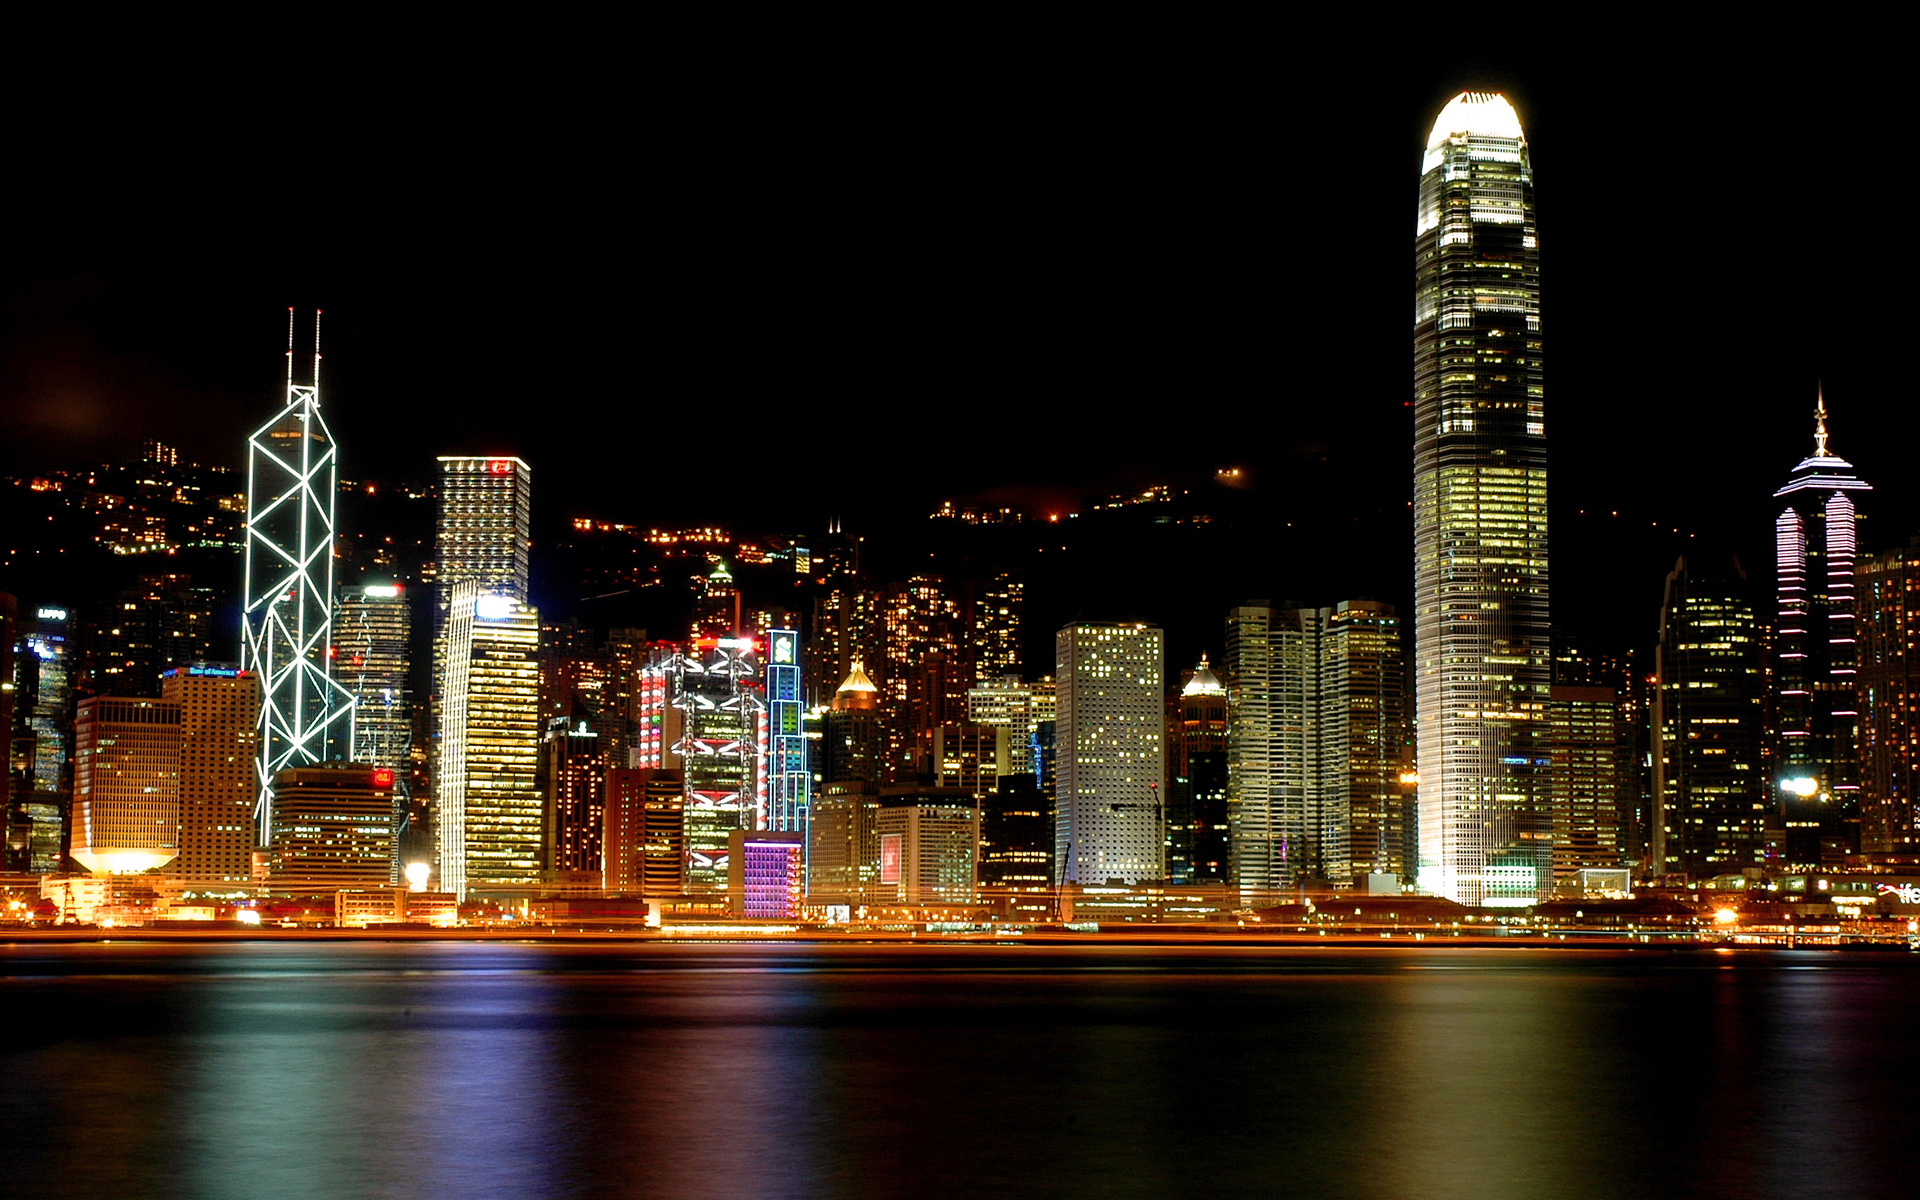 Hong Kong Victoria Harbour 470.06 Kb